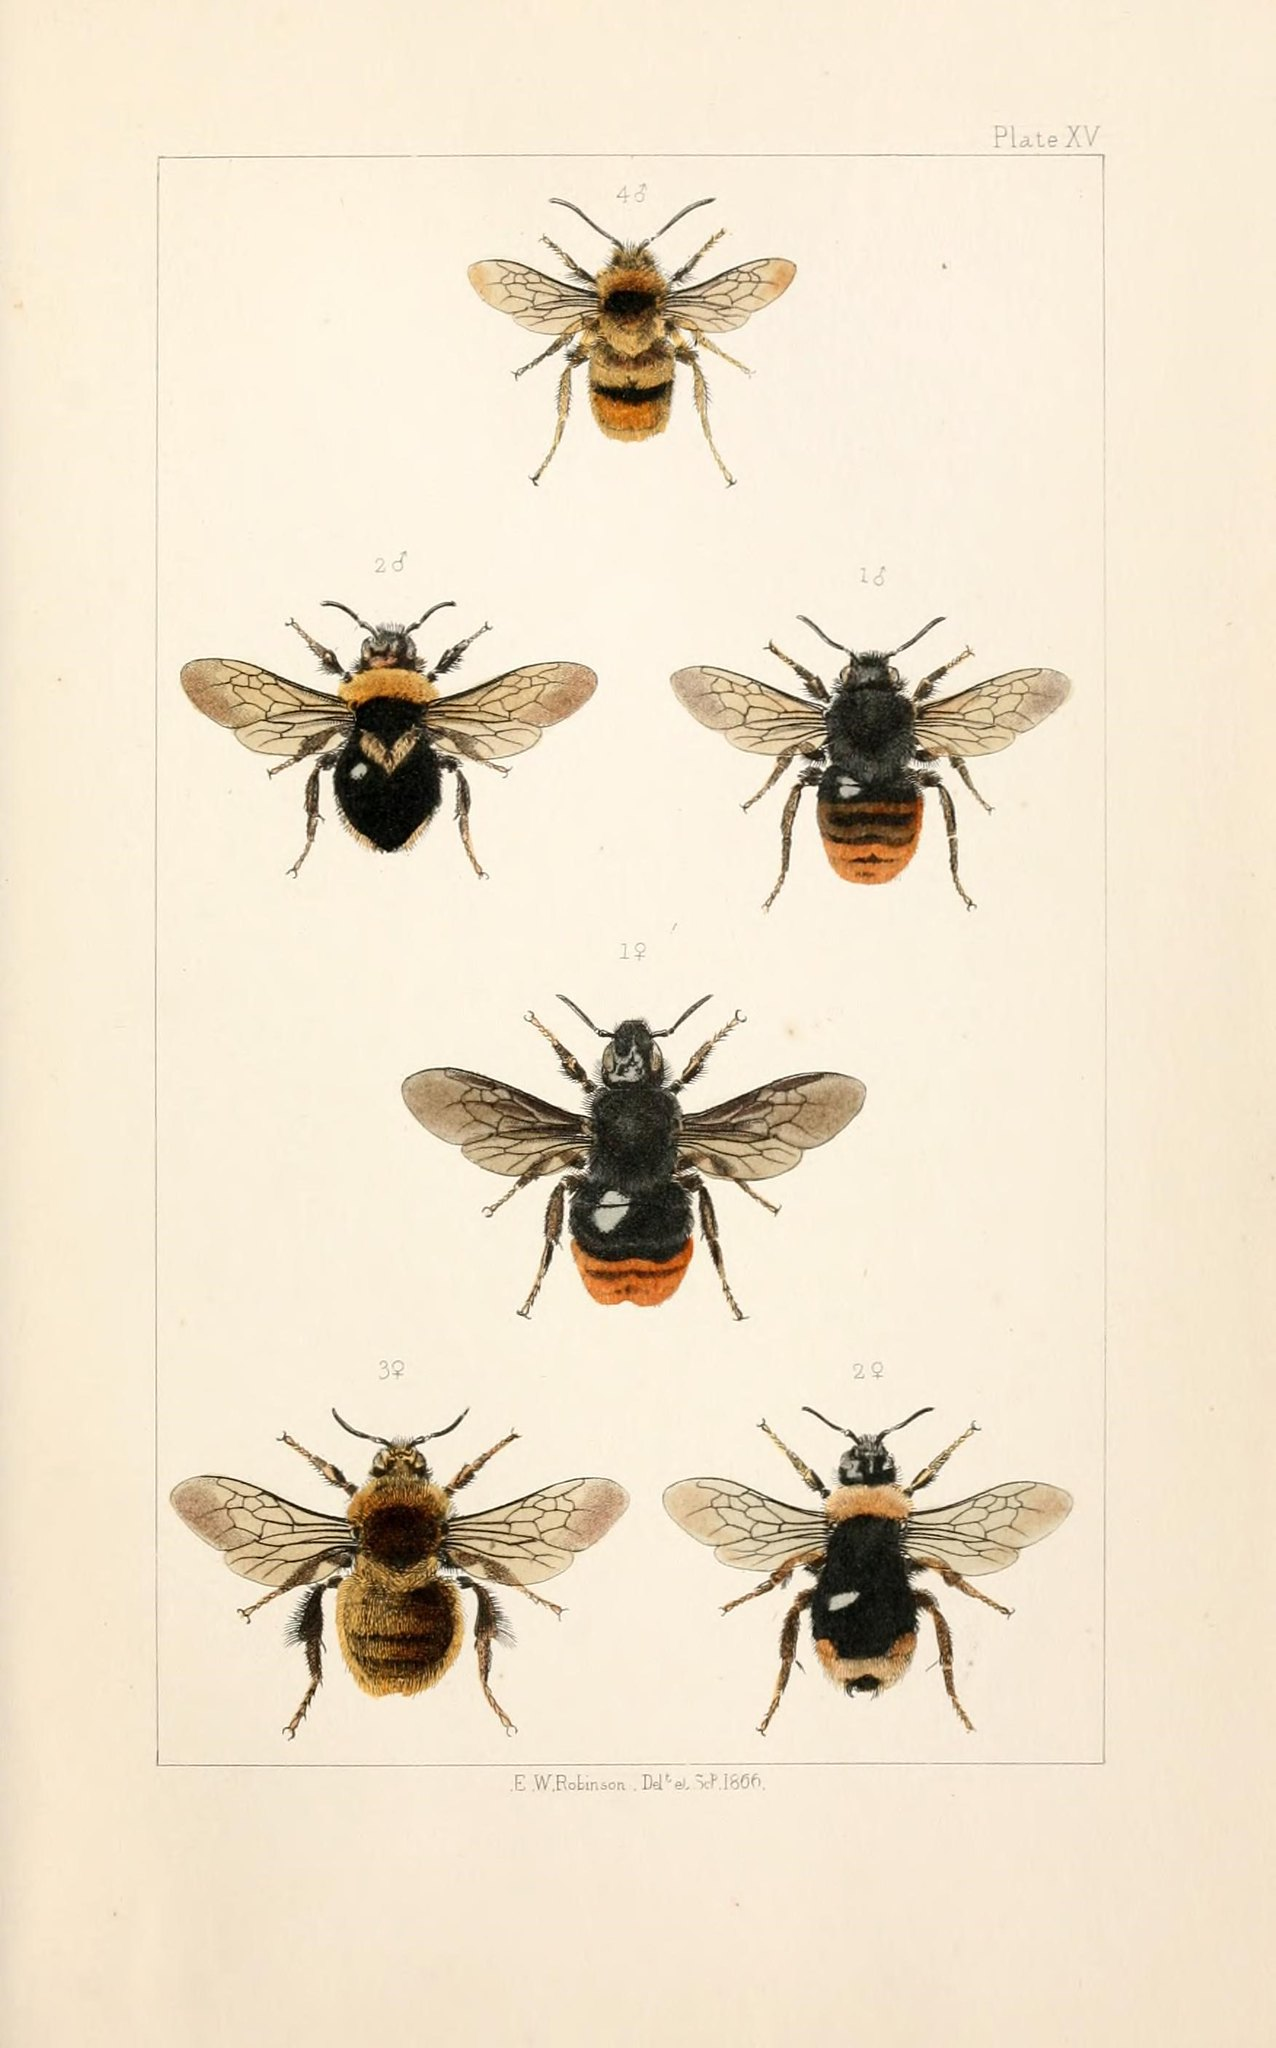 Illustration of bees.